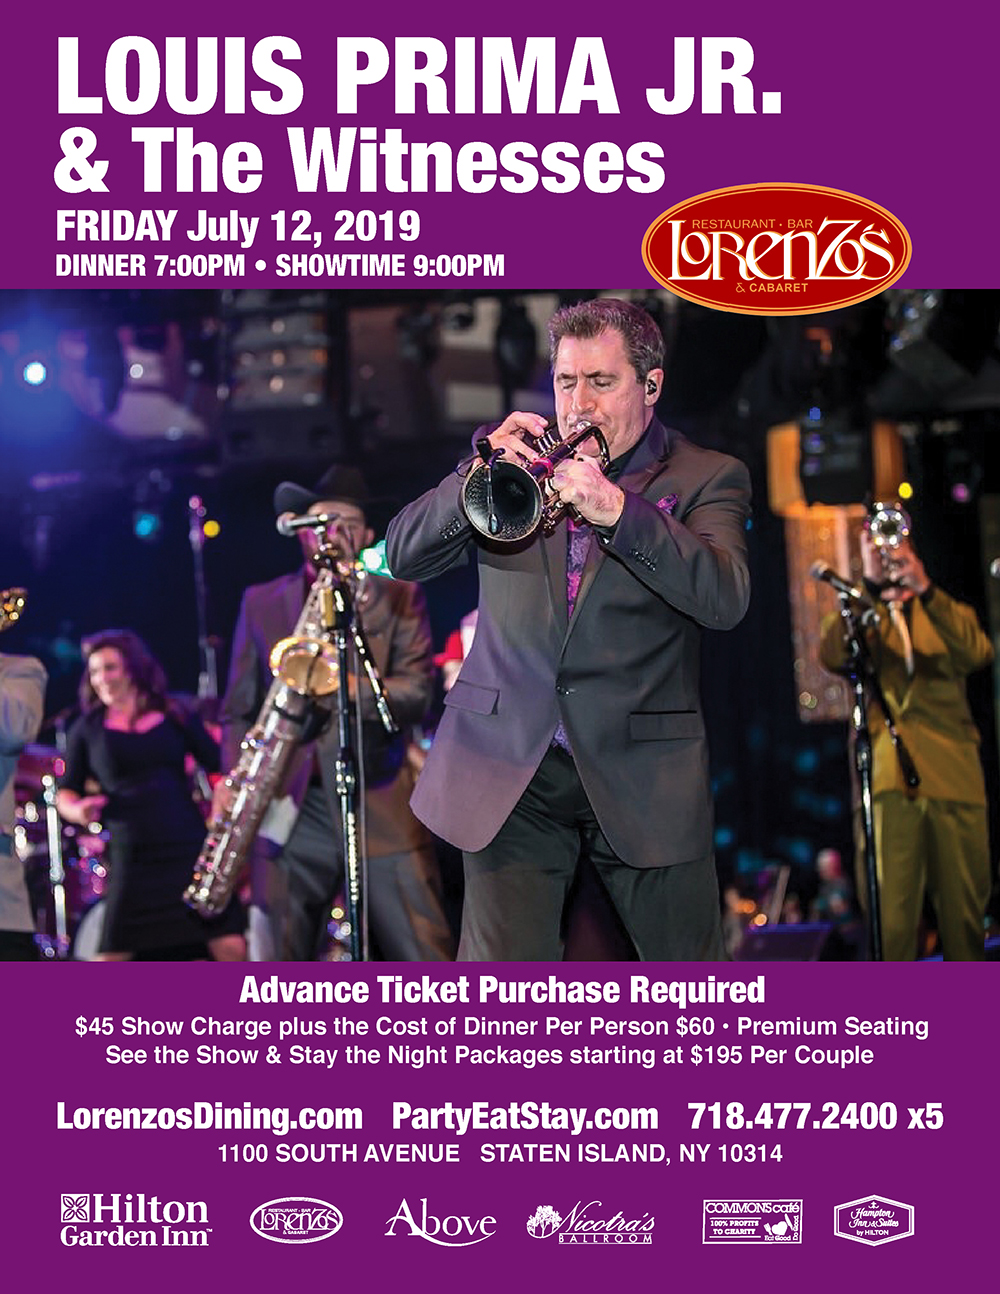 Louis Prima Jr. & The Witnesses